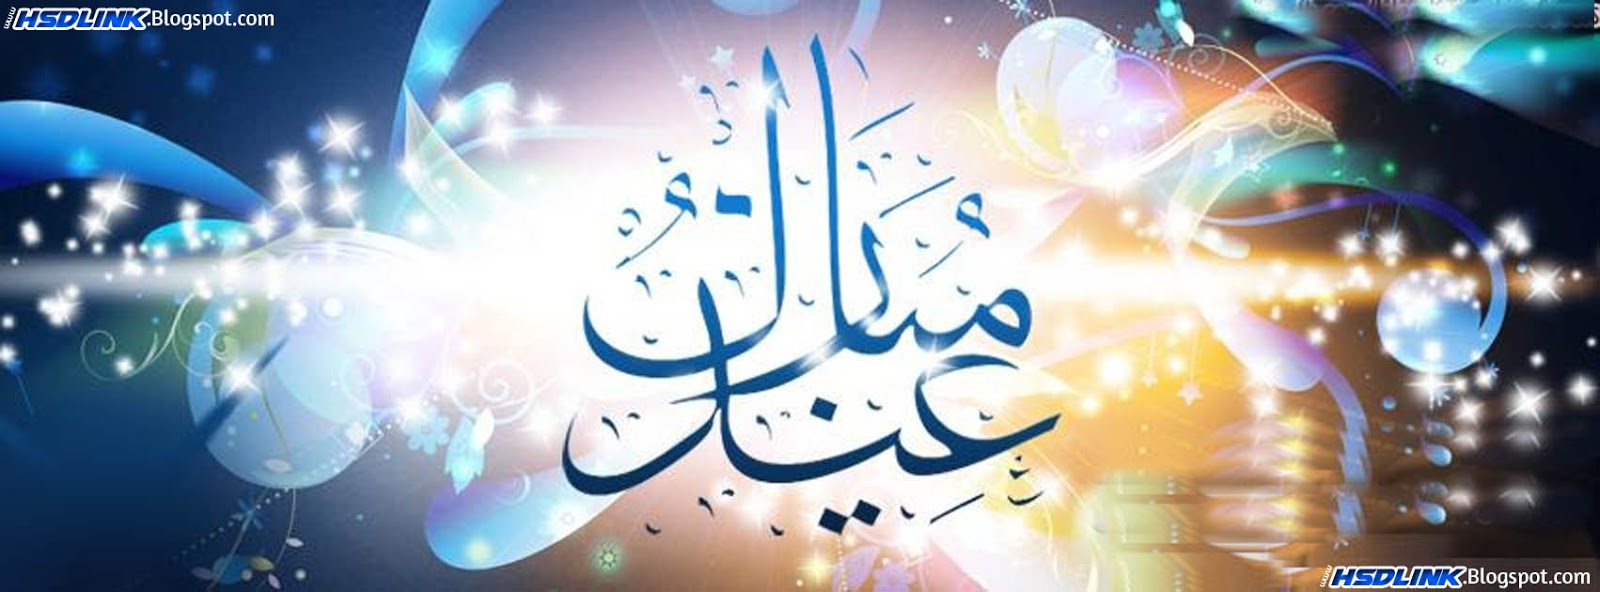 Top Facebook Cover 2016 Ied Wallpaper - Eid_Mubarak_7_timeline_cover_photo_for_fb  Gallery_435523 .jpg